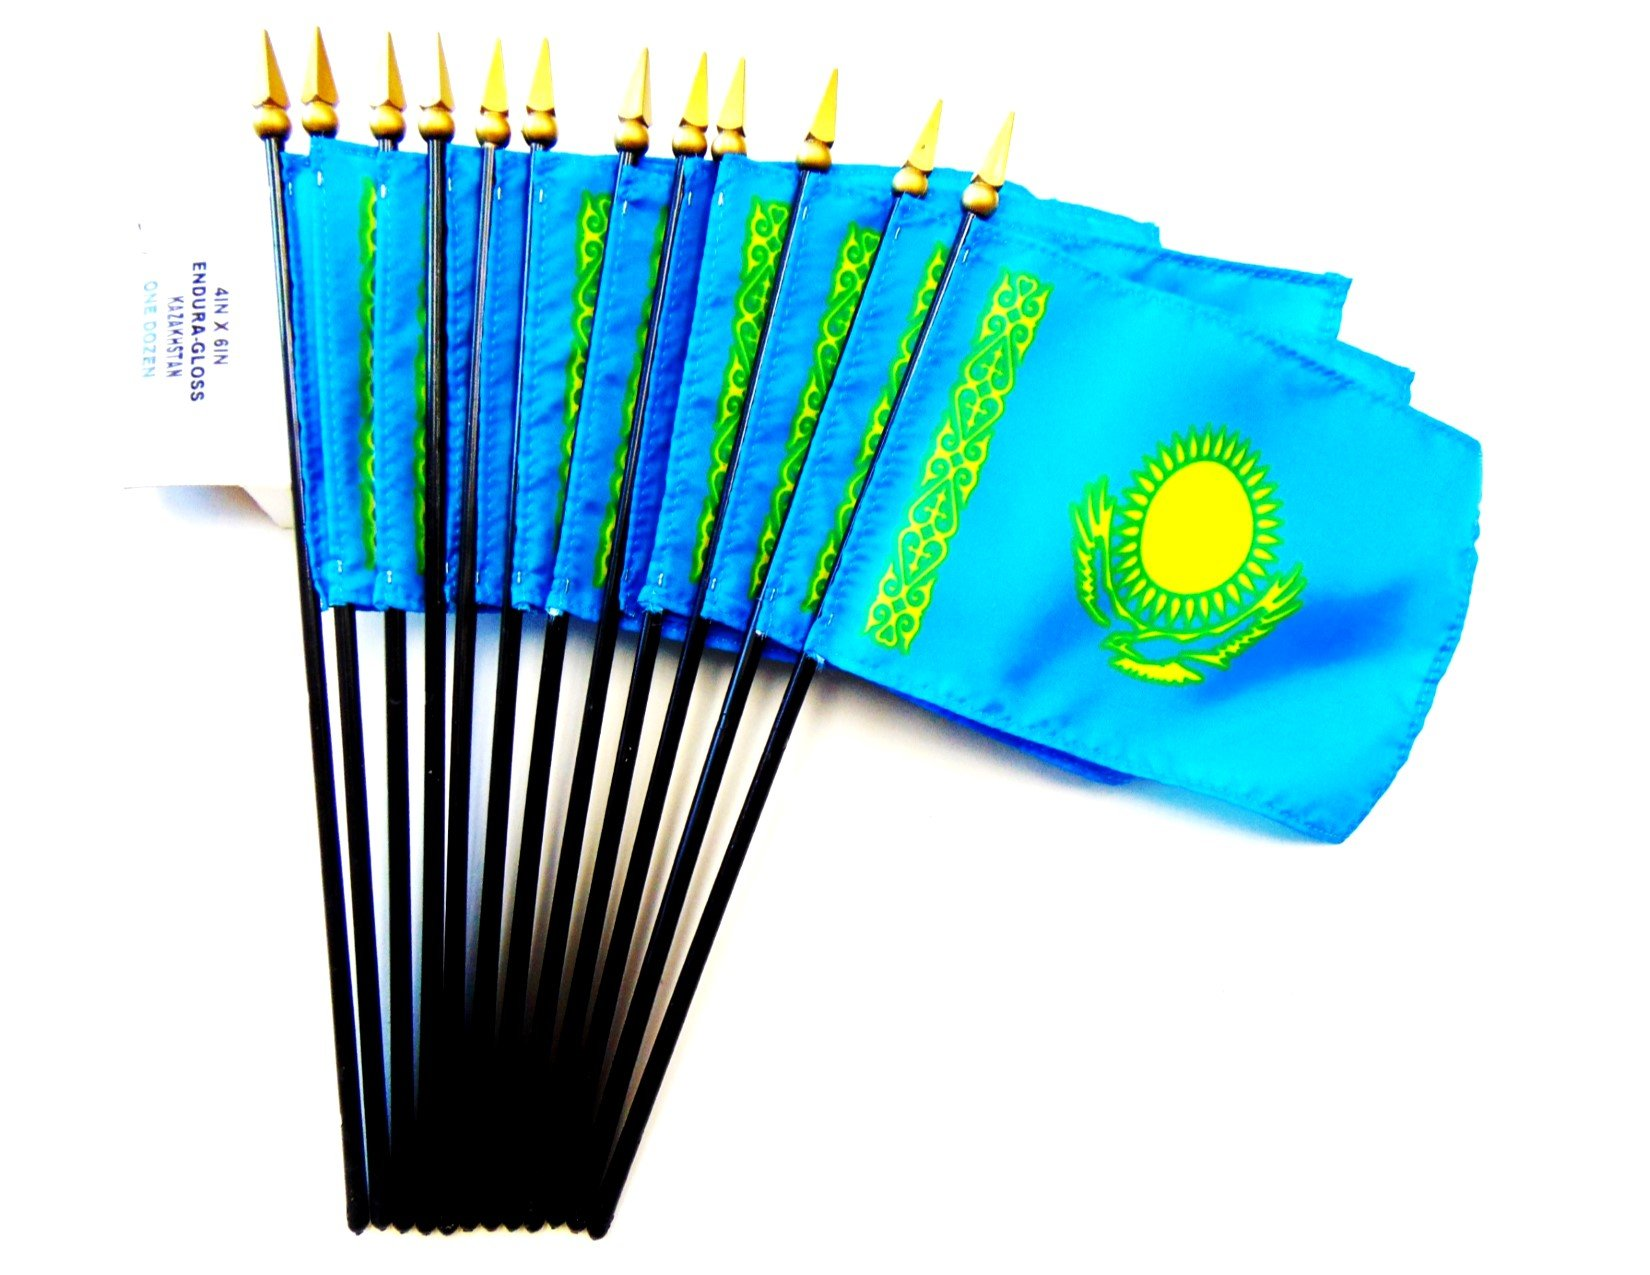 MADE IN USA!! Box of 12 Kazakhstan 4''x6'' Miniature Desk & Table Flags; 12 American Made Small Mini Kazakh Flags in a Custom Made Cardboard Box Specifically Made for These Flags